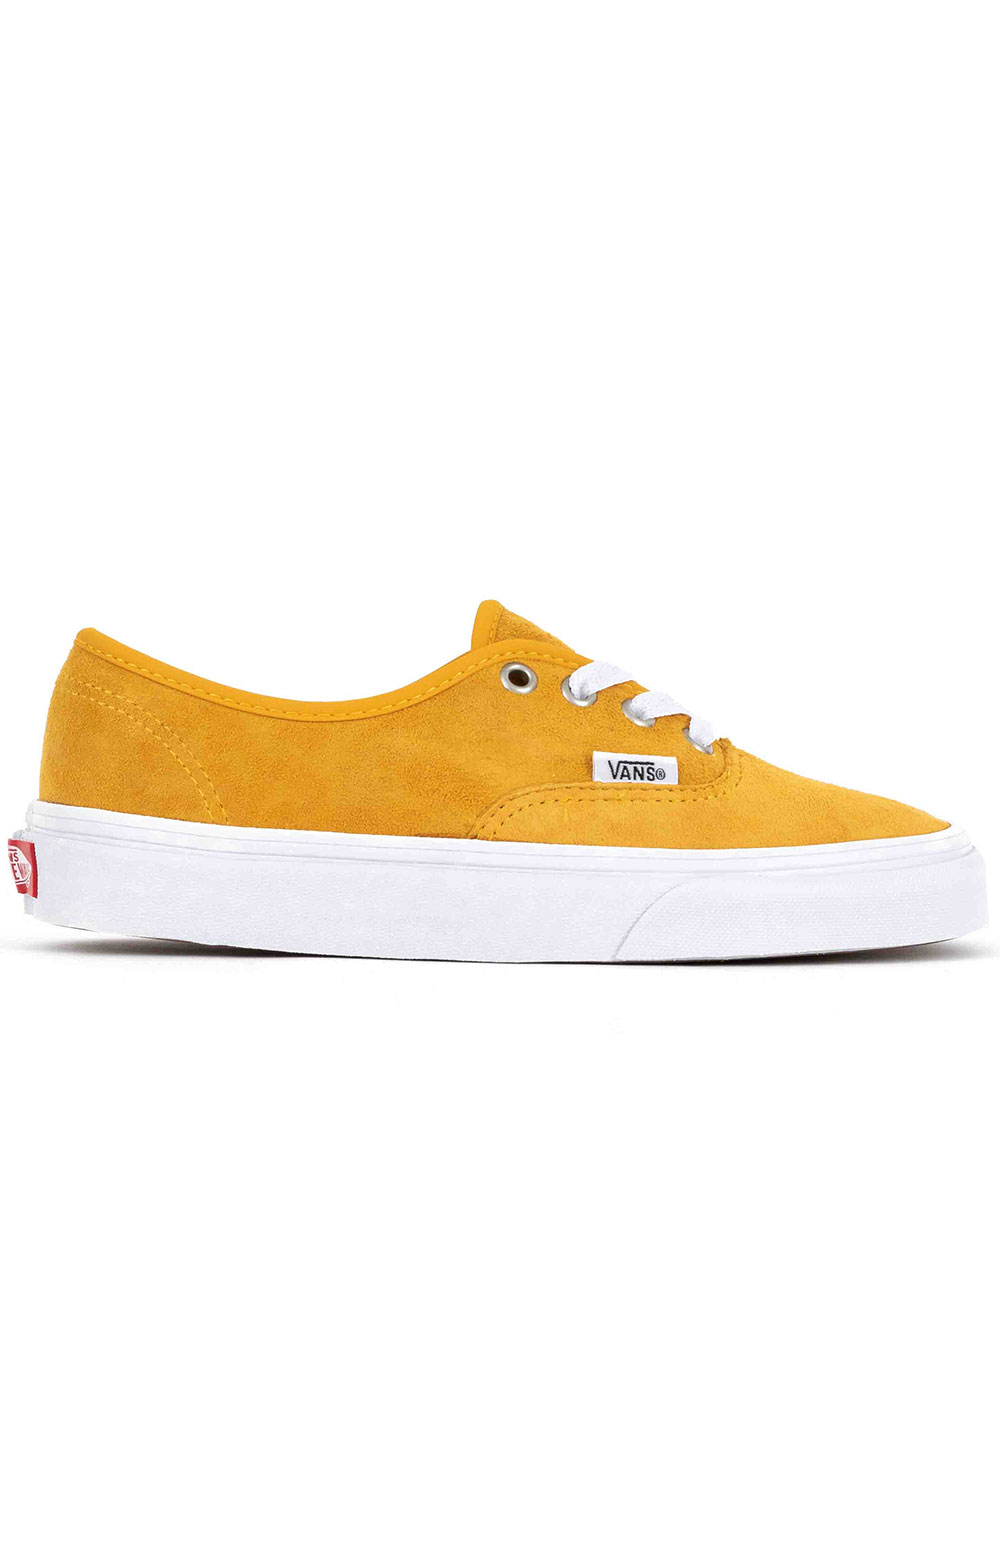 Vans Women's, (Z5IV77) Pig Suede Authentic Shoe - Mango Mojito